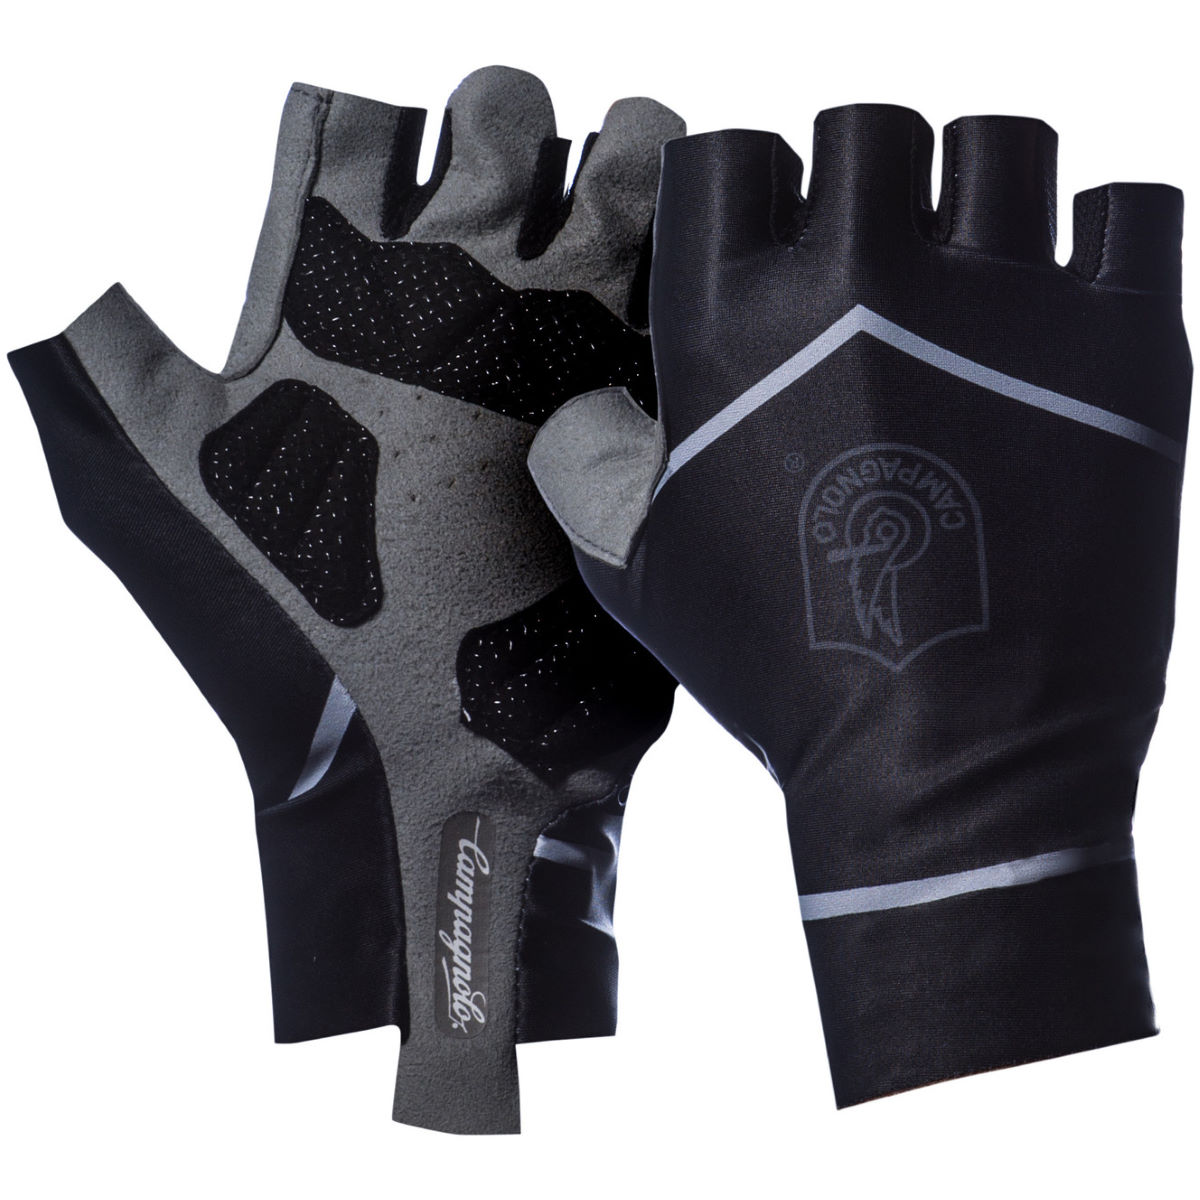 Campagnolo C-Tech Gloves   Gloves